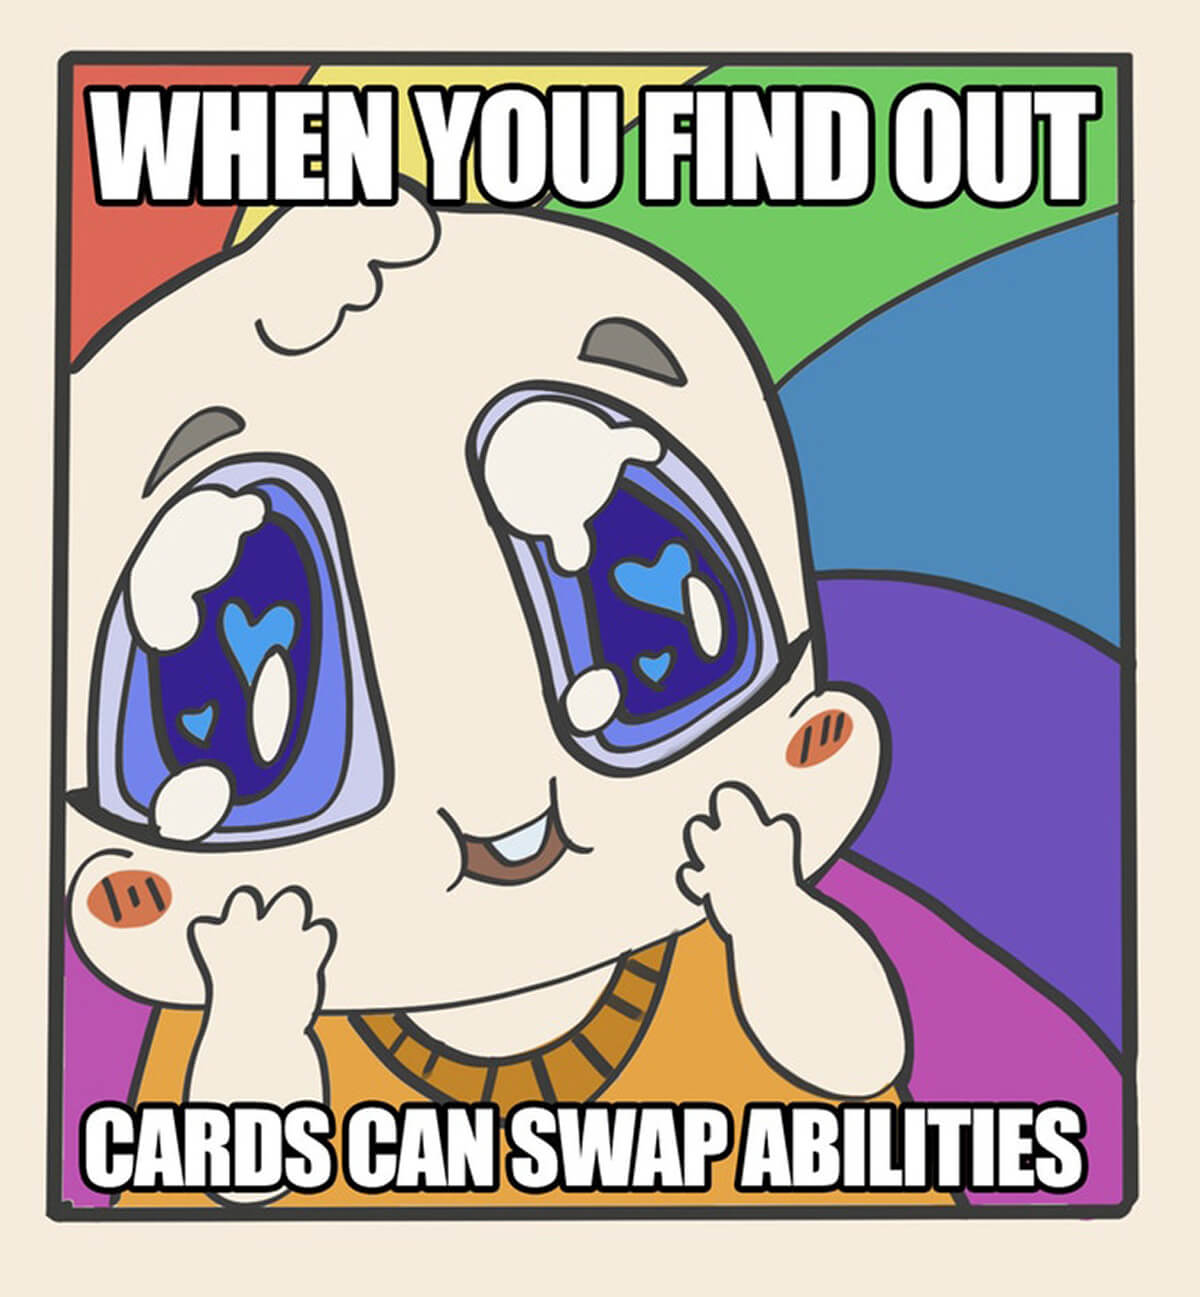 When You Find Out Cards Can Swap Abilities